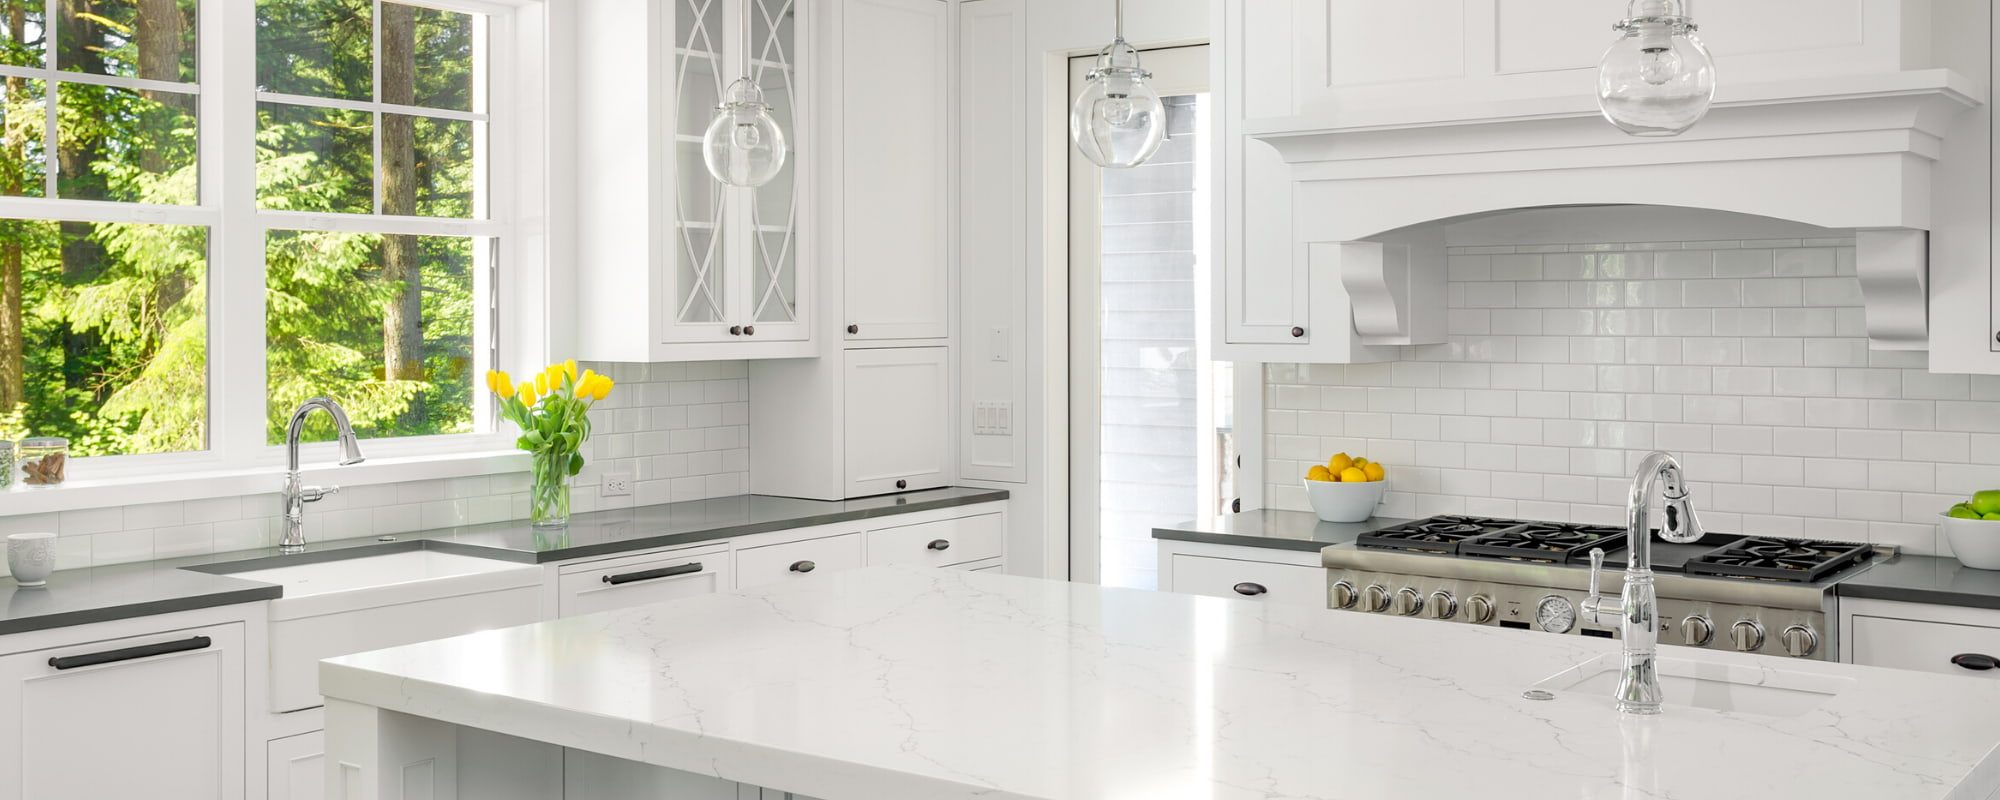 Kitchen with clean natural stone appliances